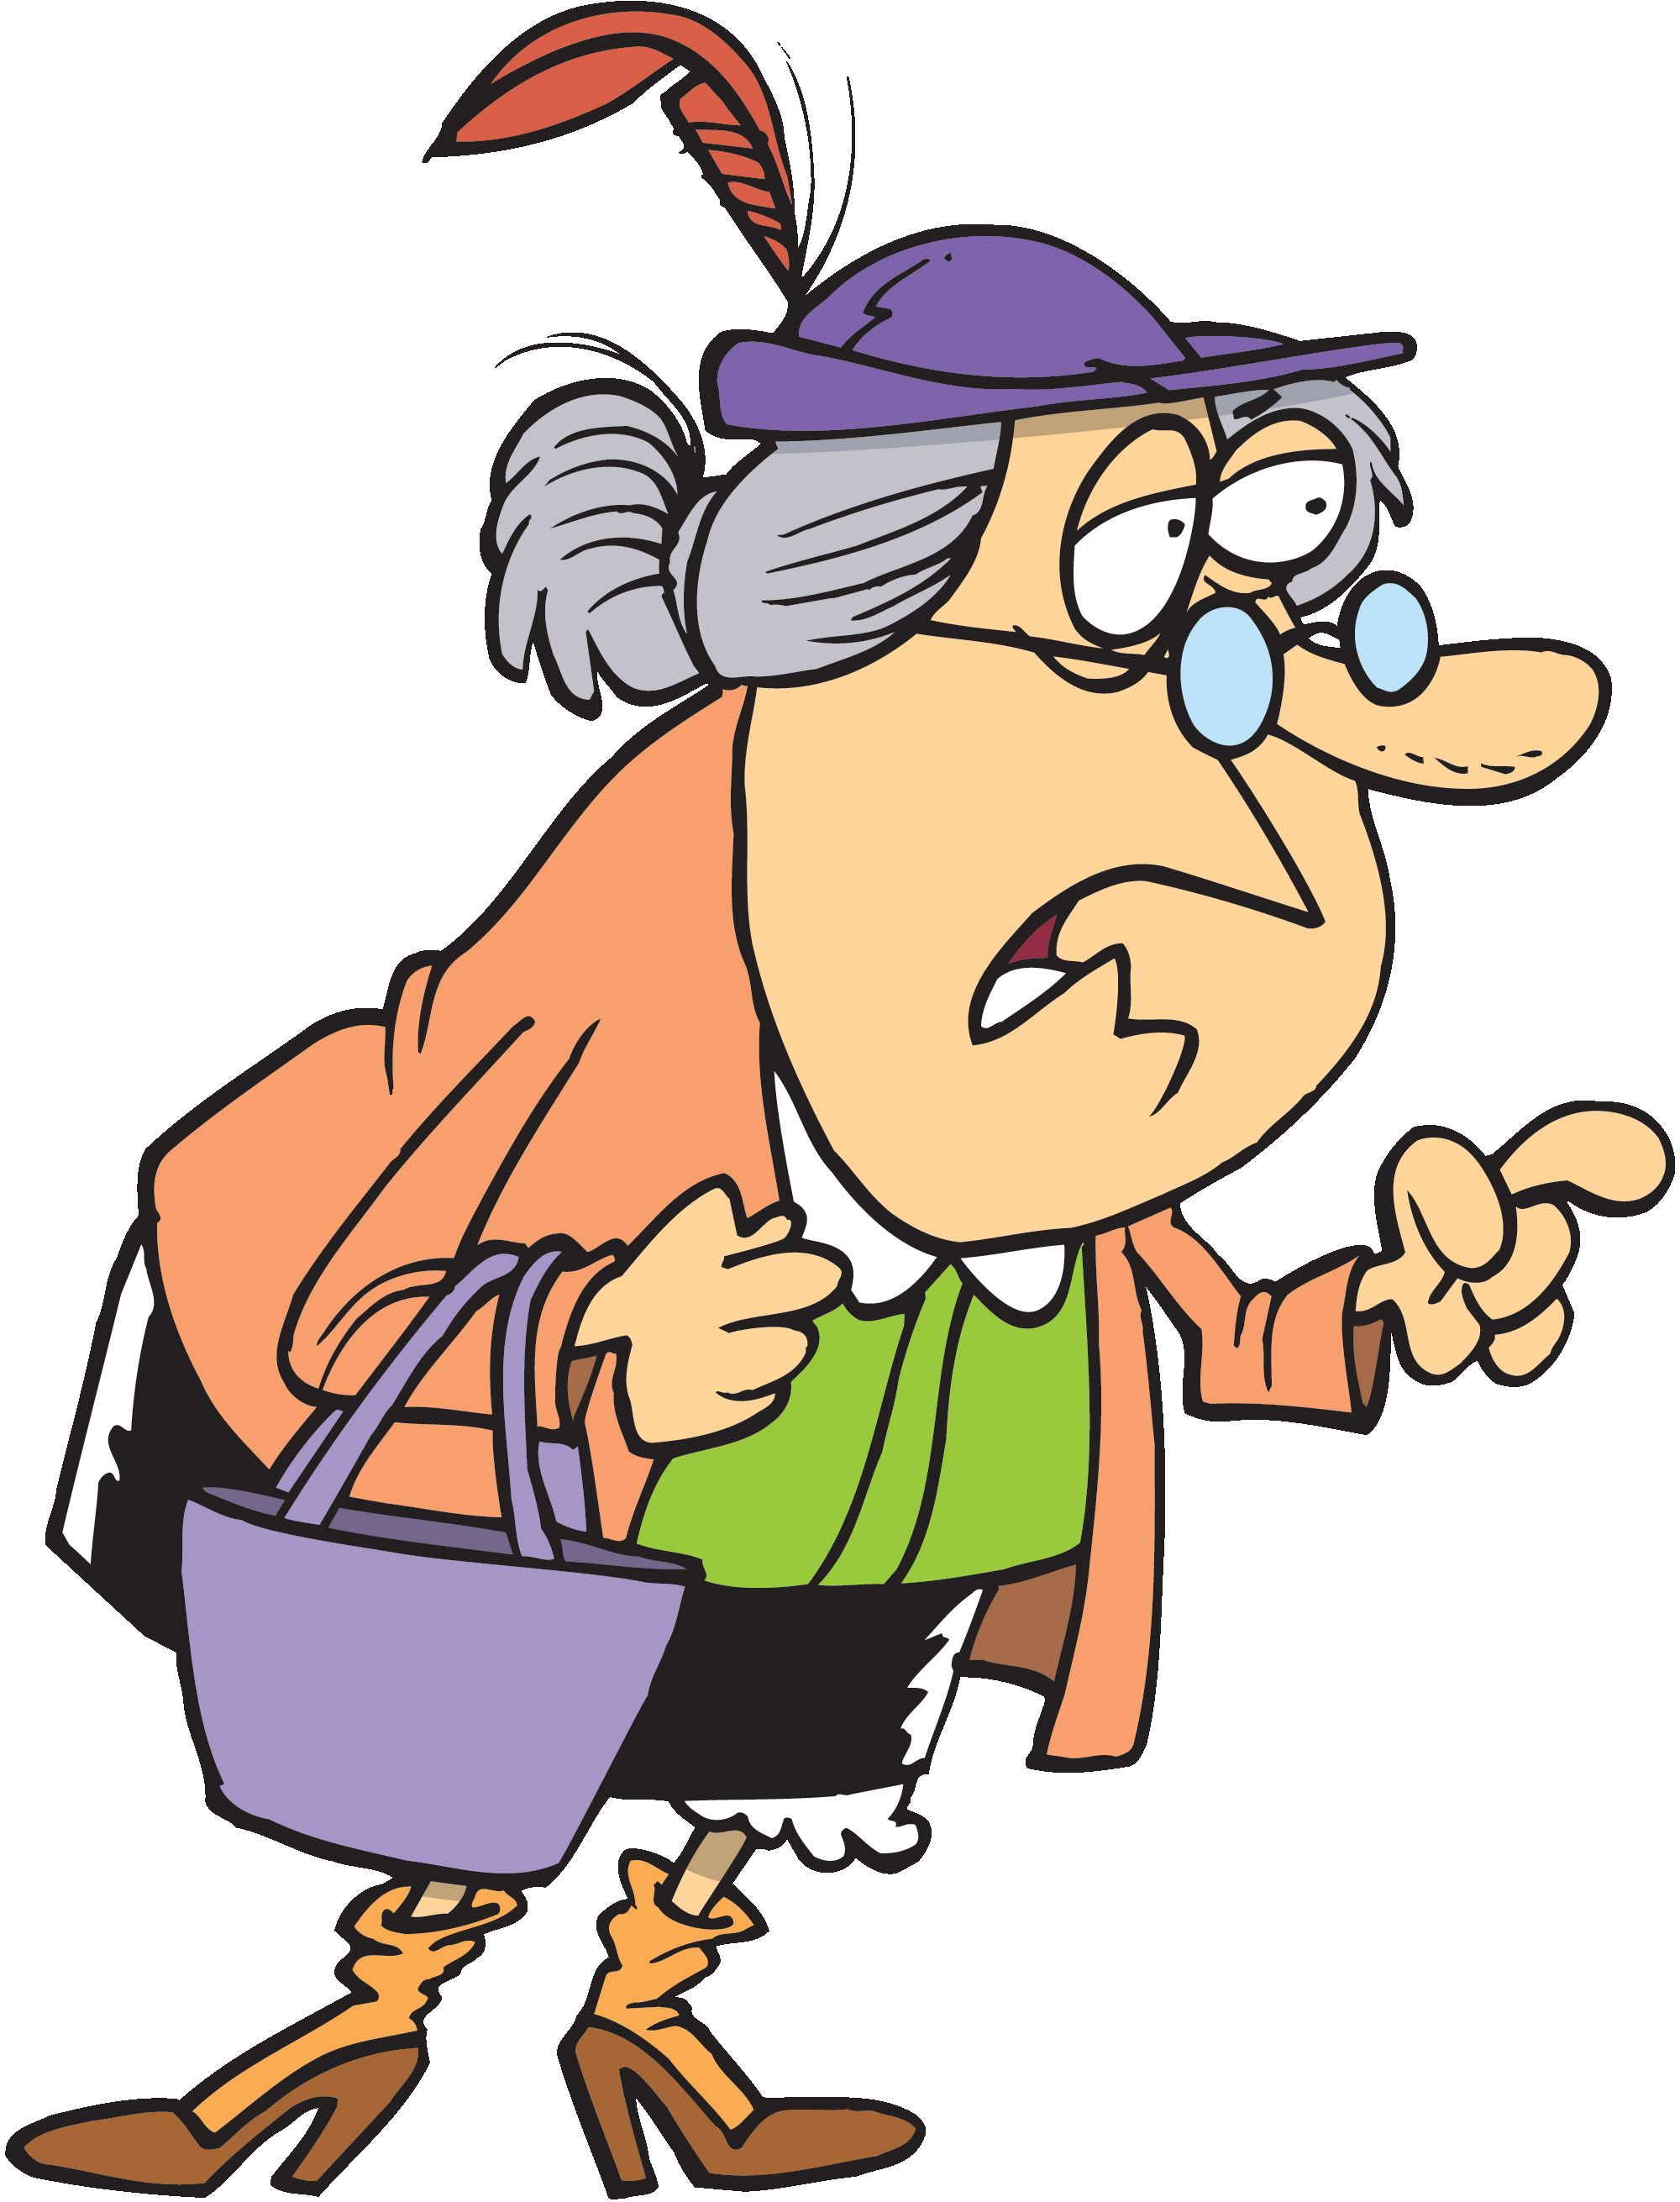 the little old lady dropping 20 notes sidewalk note and clip art rh pinterest com old lady clipart images old lady clipart images